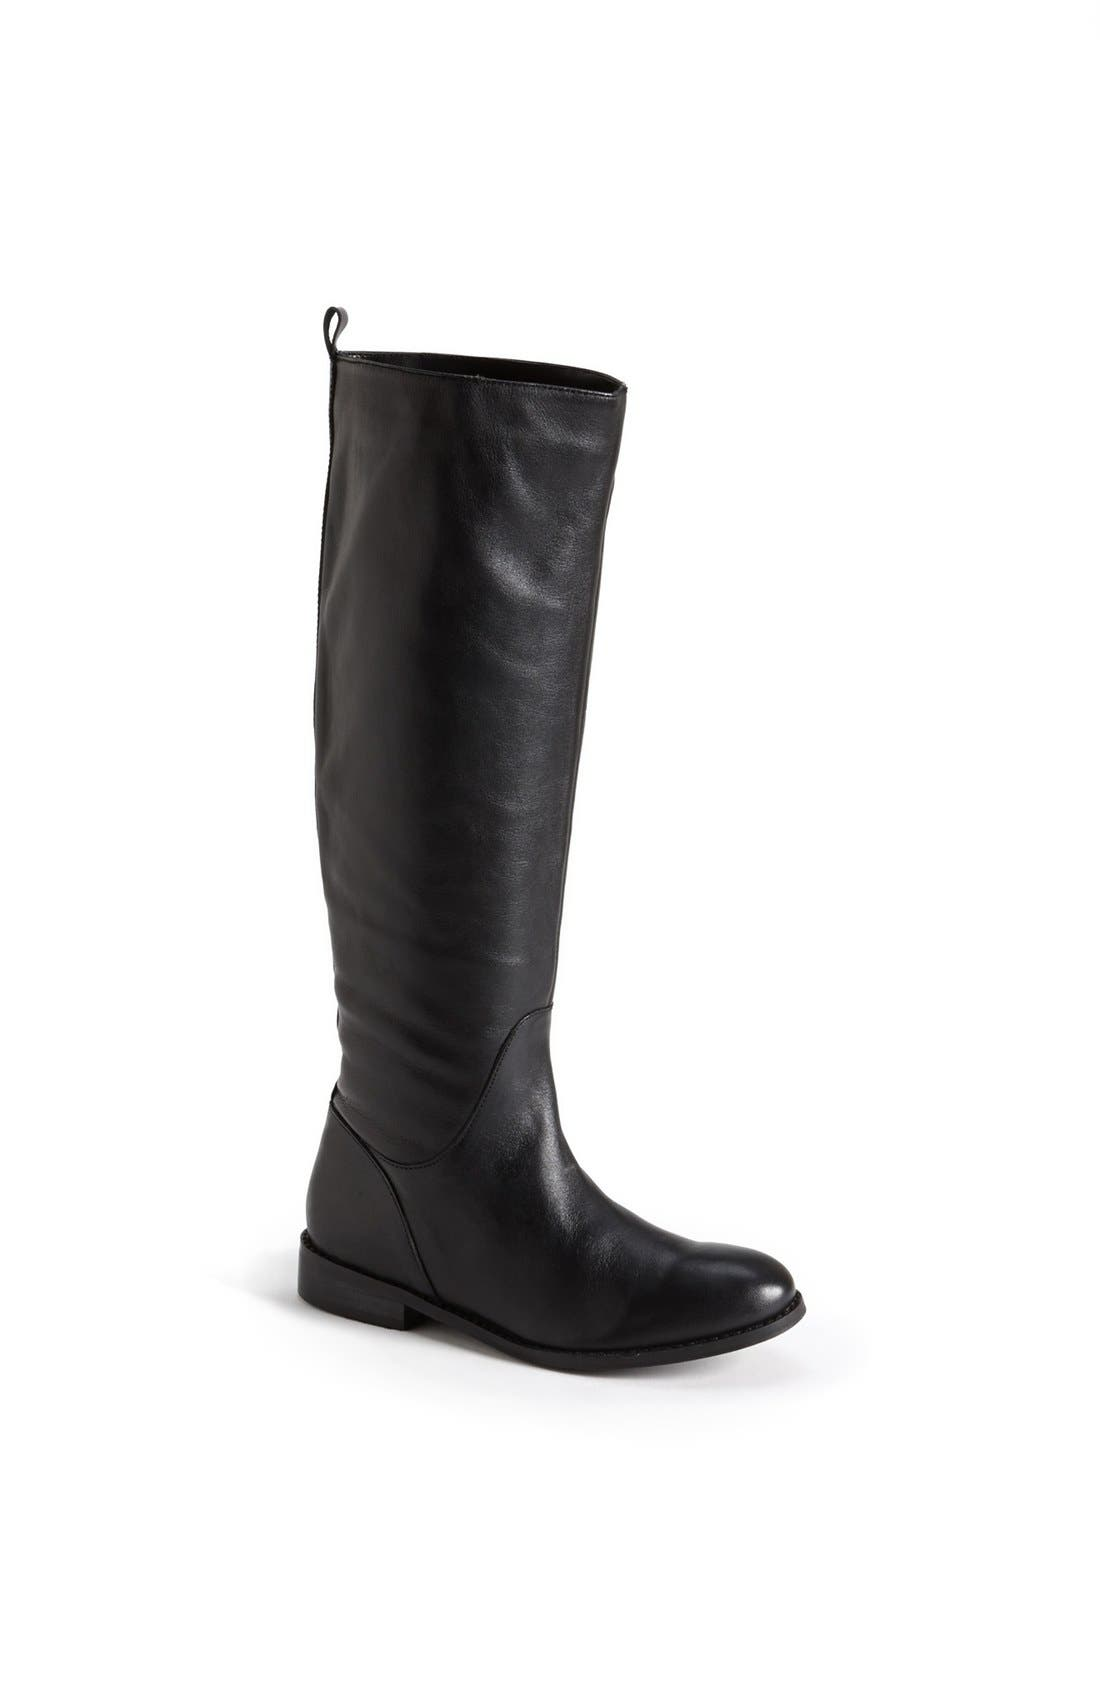 Main Image - Topshop 'Dancer' Leather Riding Boot